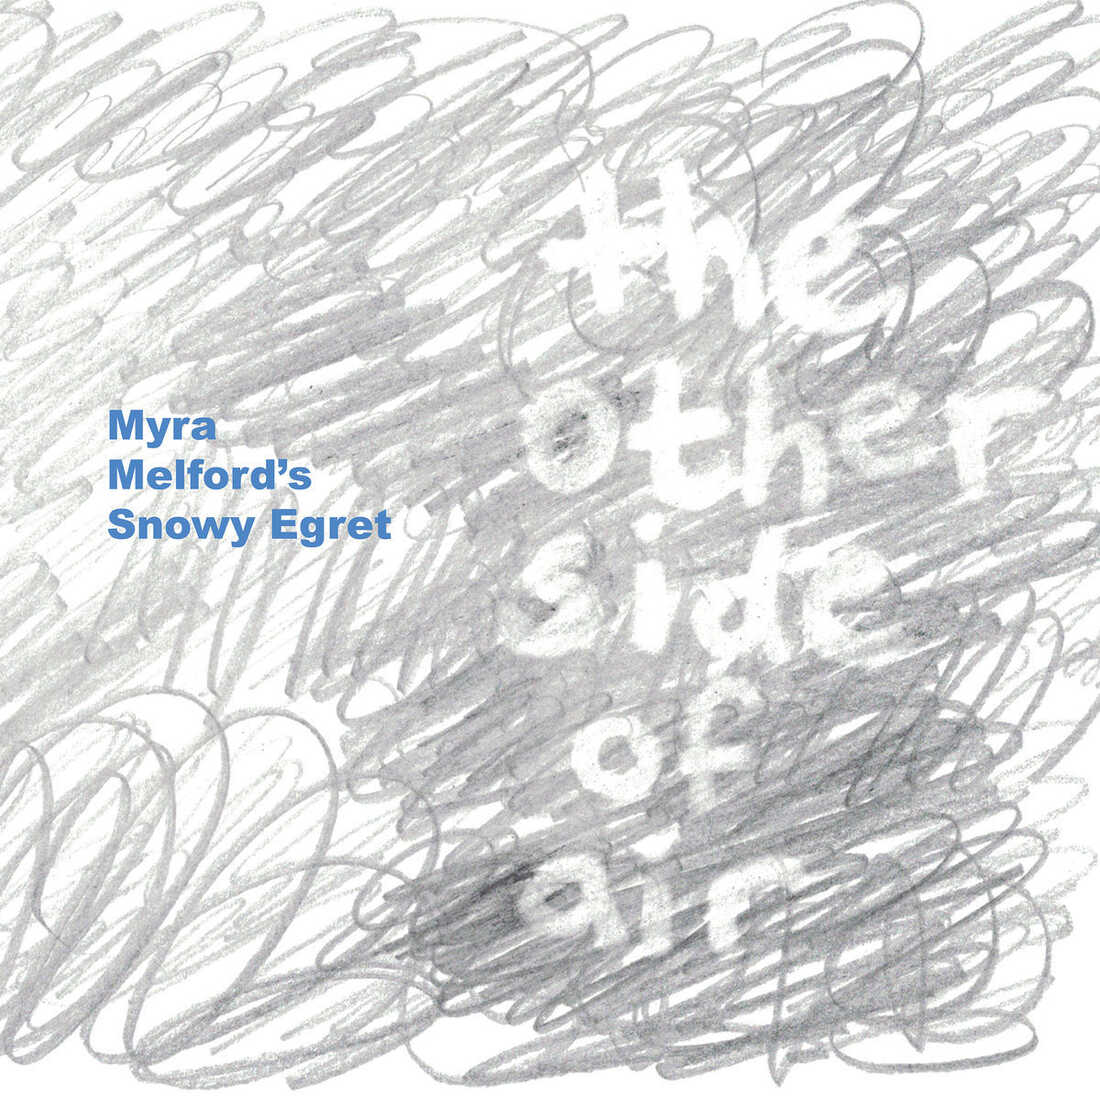 Myra Melford's Snowy Egret, The Other Side of Air